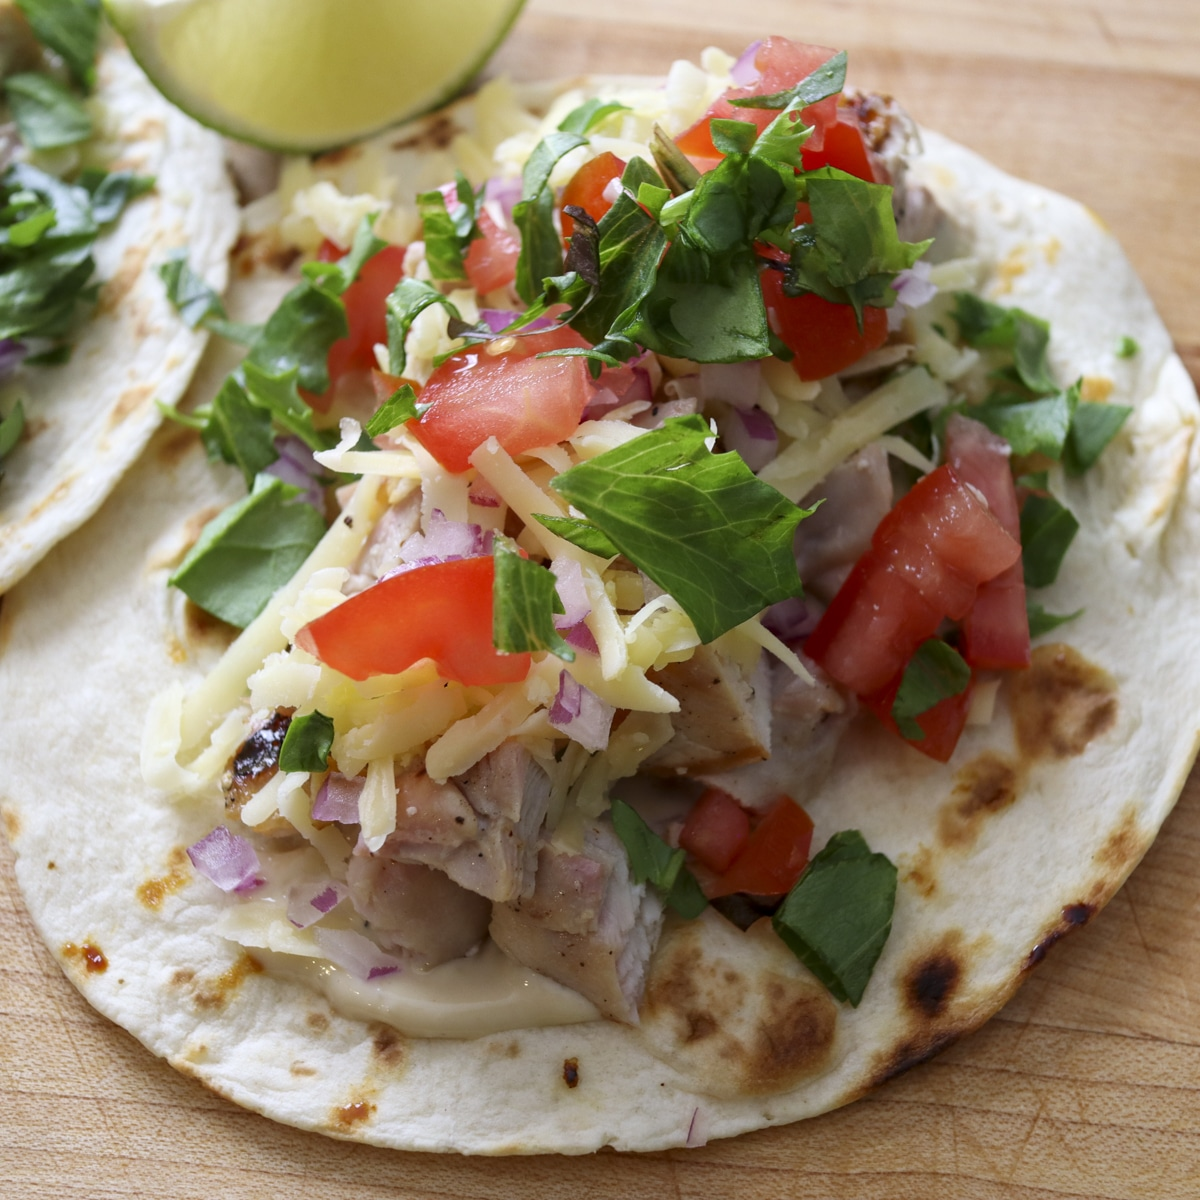 Building the tacos